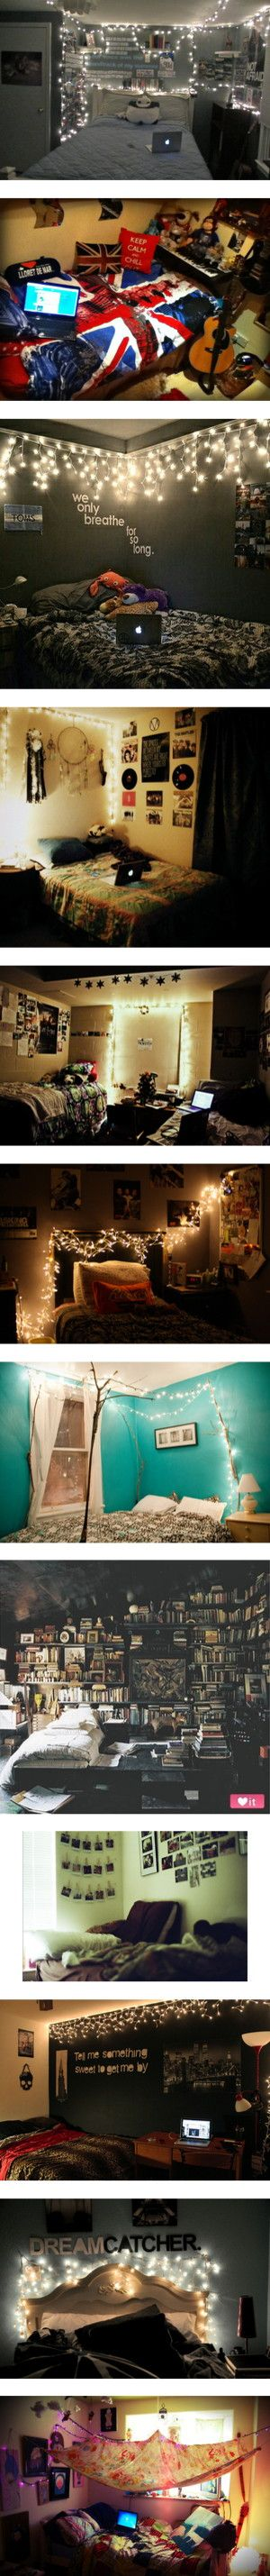 Bedroom christmas lights quotes - Pinning This To Show Use Of Christmas Lights I Shall Be Shopping For Some Since Hopefully There Are Some Left From Christmas